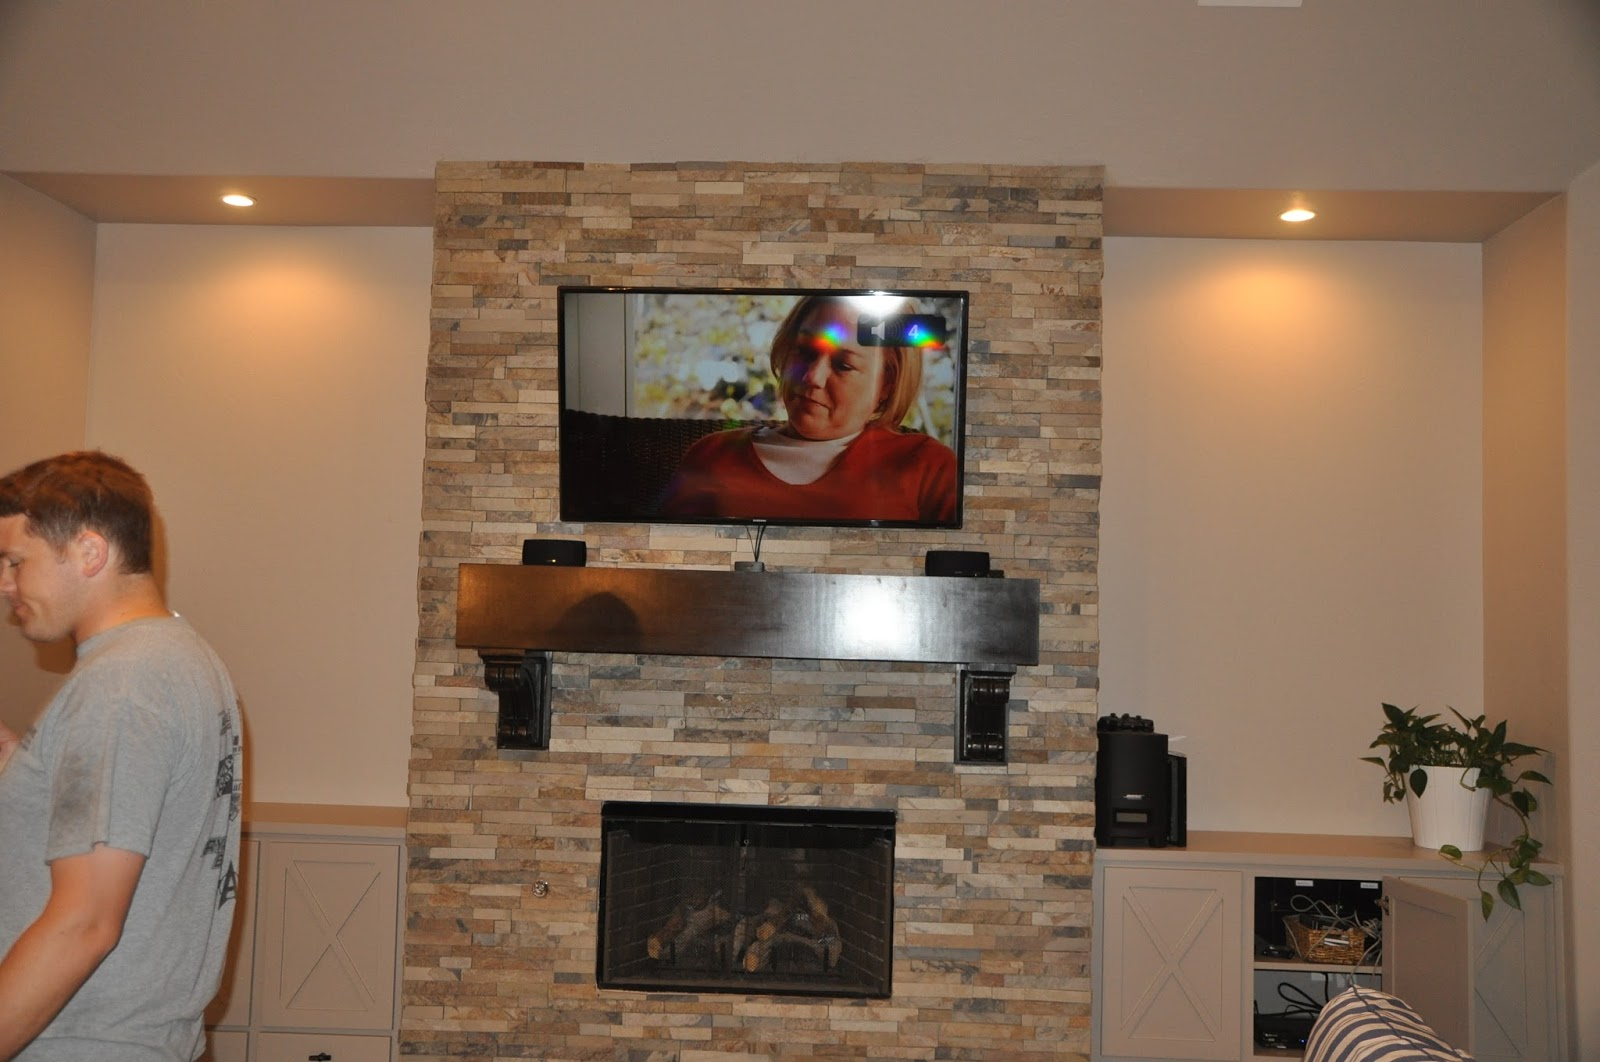 Made How To Mount A Flat Screen Tv On Stone Fireplace Diy Wiring Wall Plates